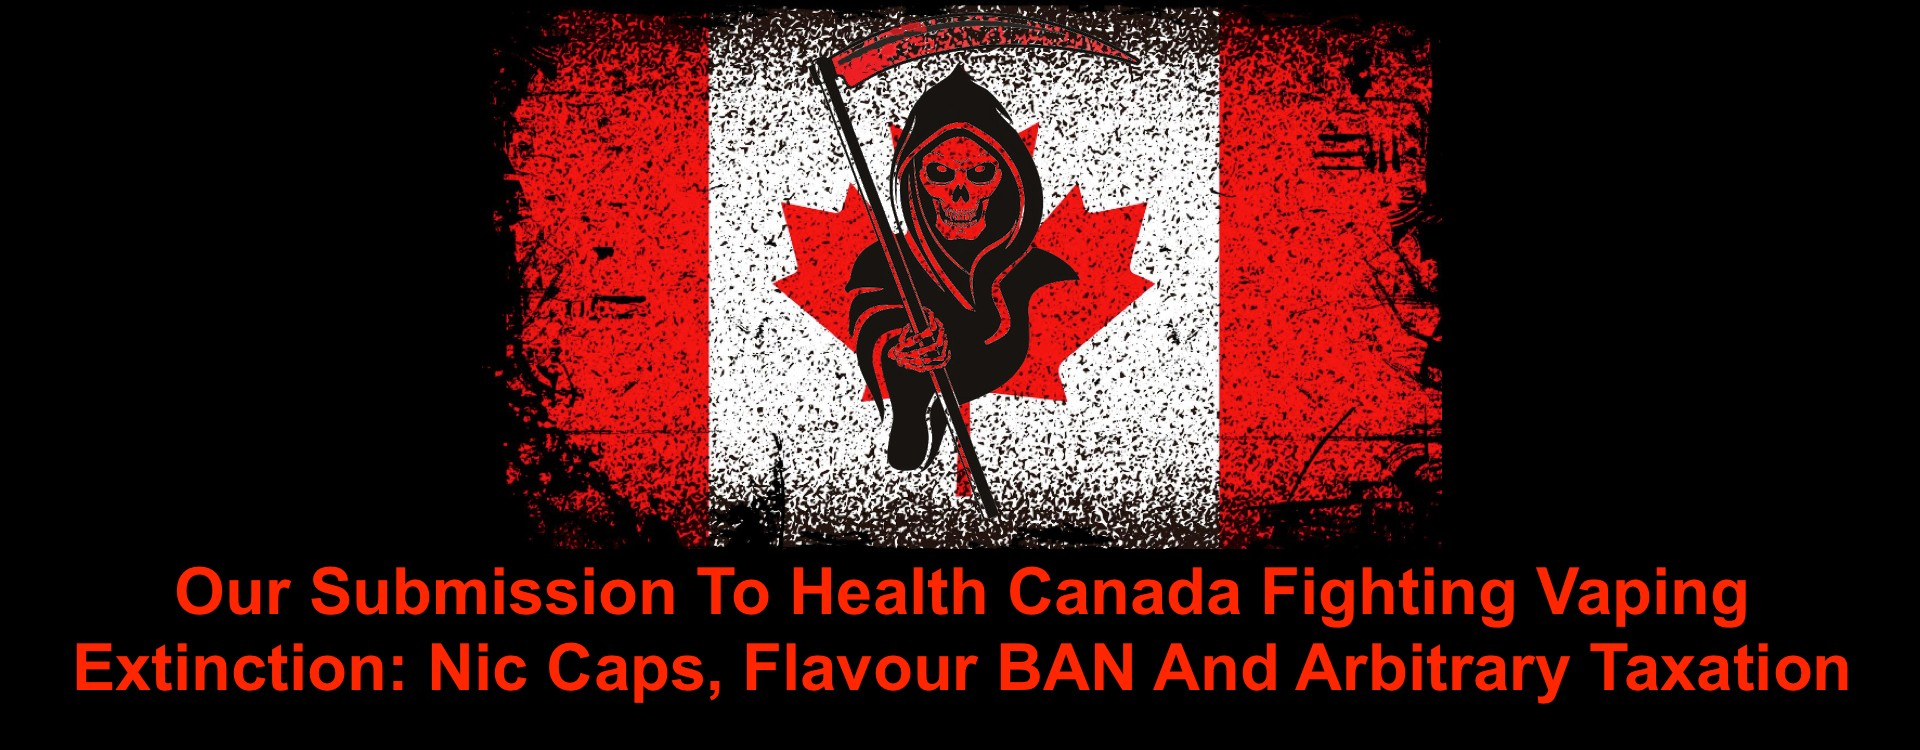 Our Submission To Health Canada Fighting Vaping Extinction: Nic Caps, Flavour BANS And Arbitrary Taxation